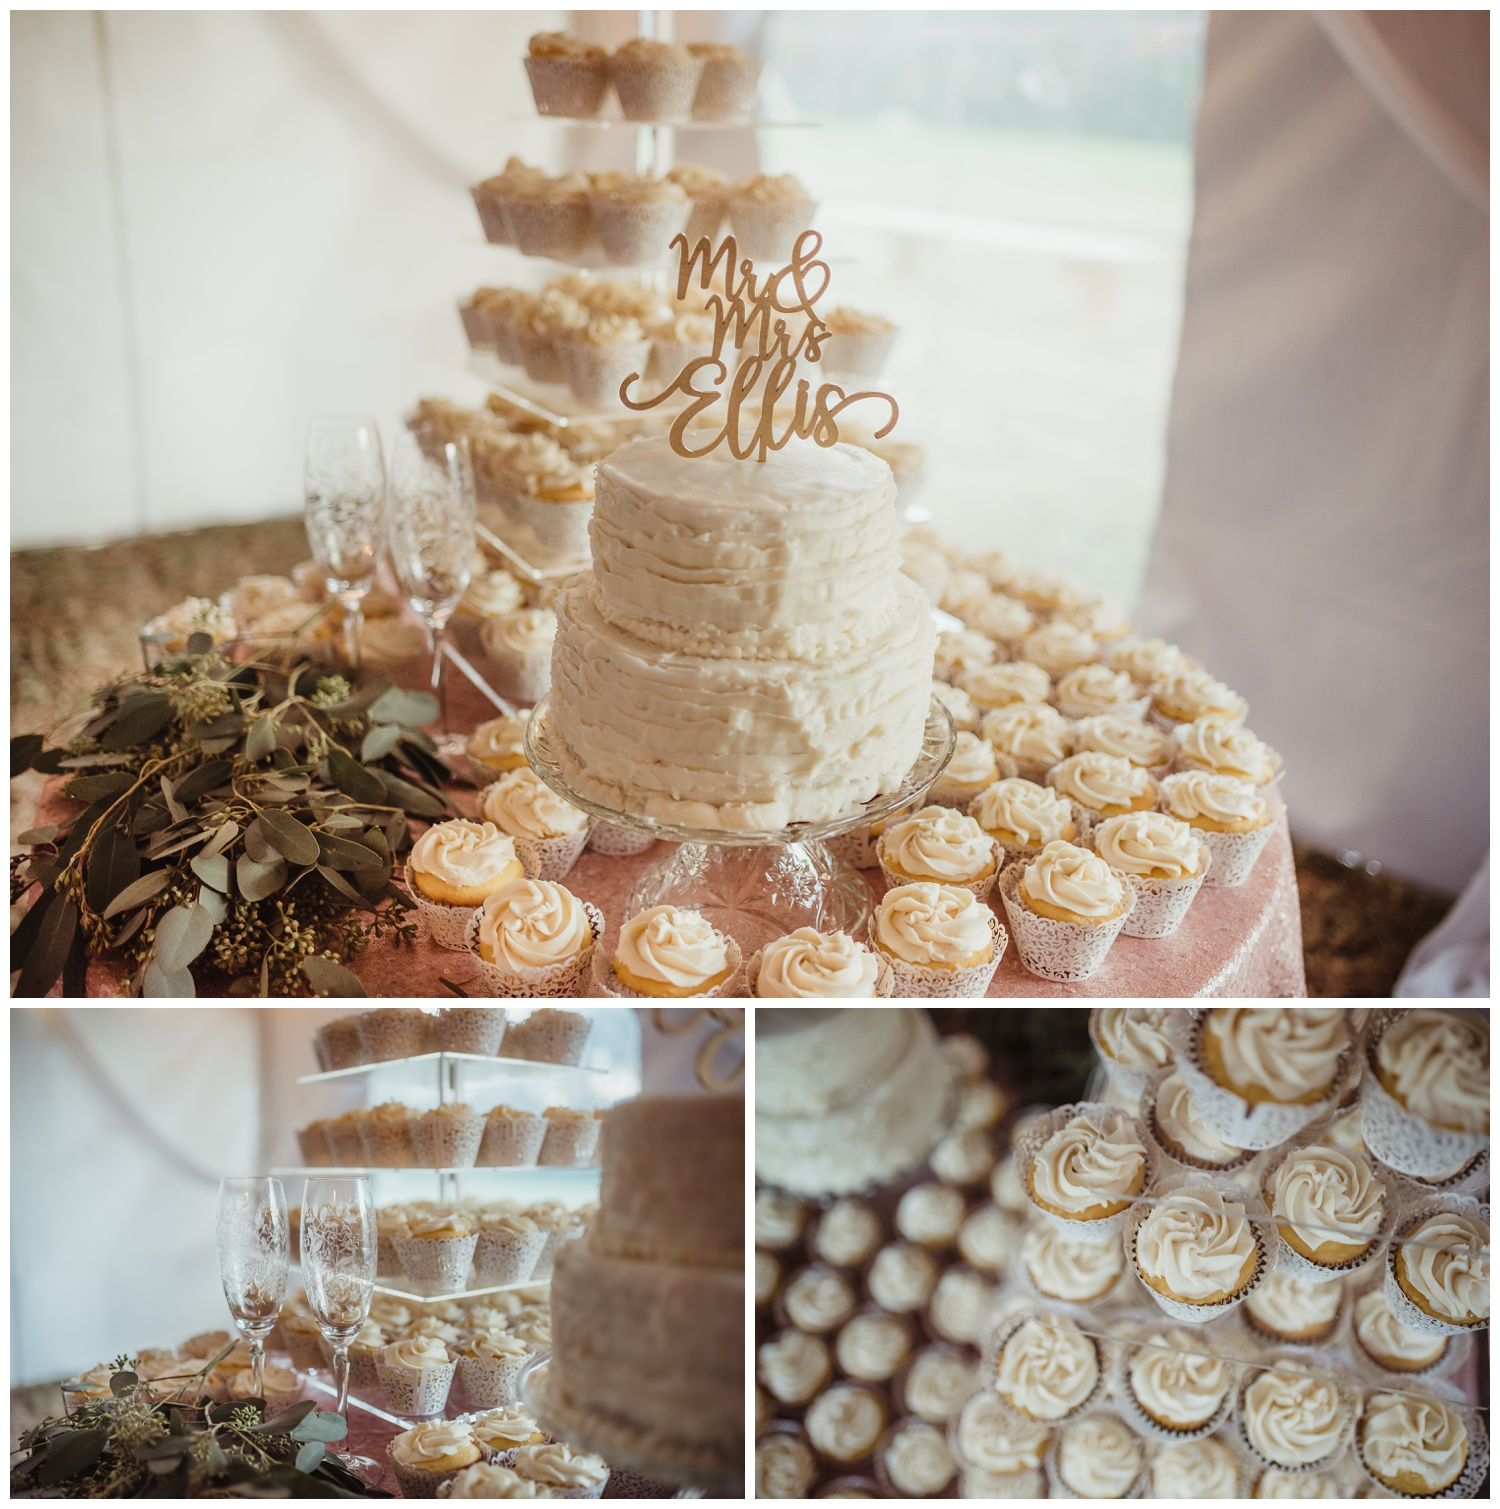 Wedding details for a reception at The Warren Estate included etched champagne flutes and white cupcakes, images by Rose Trail Images of Rolesville, NC.